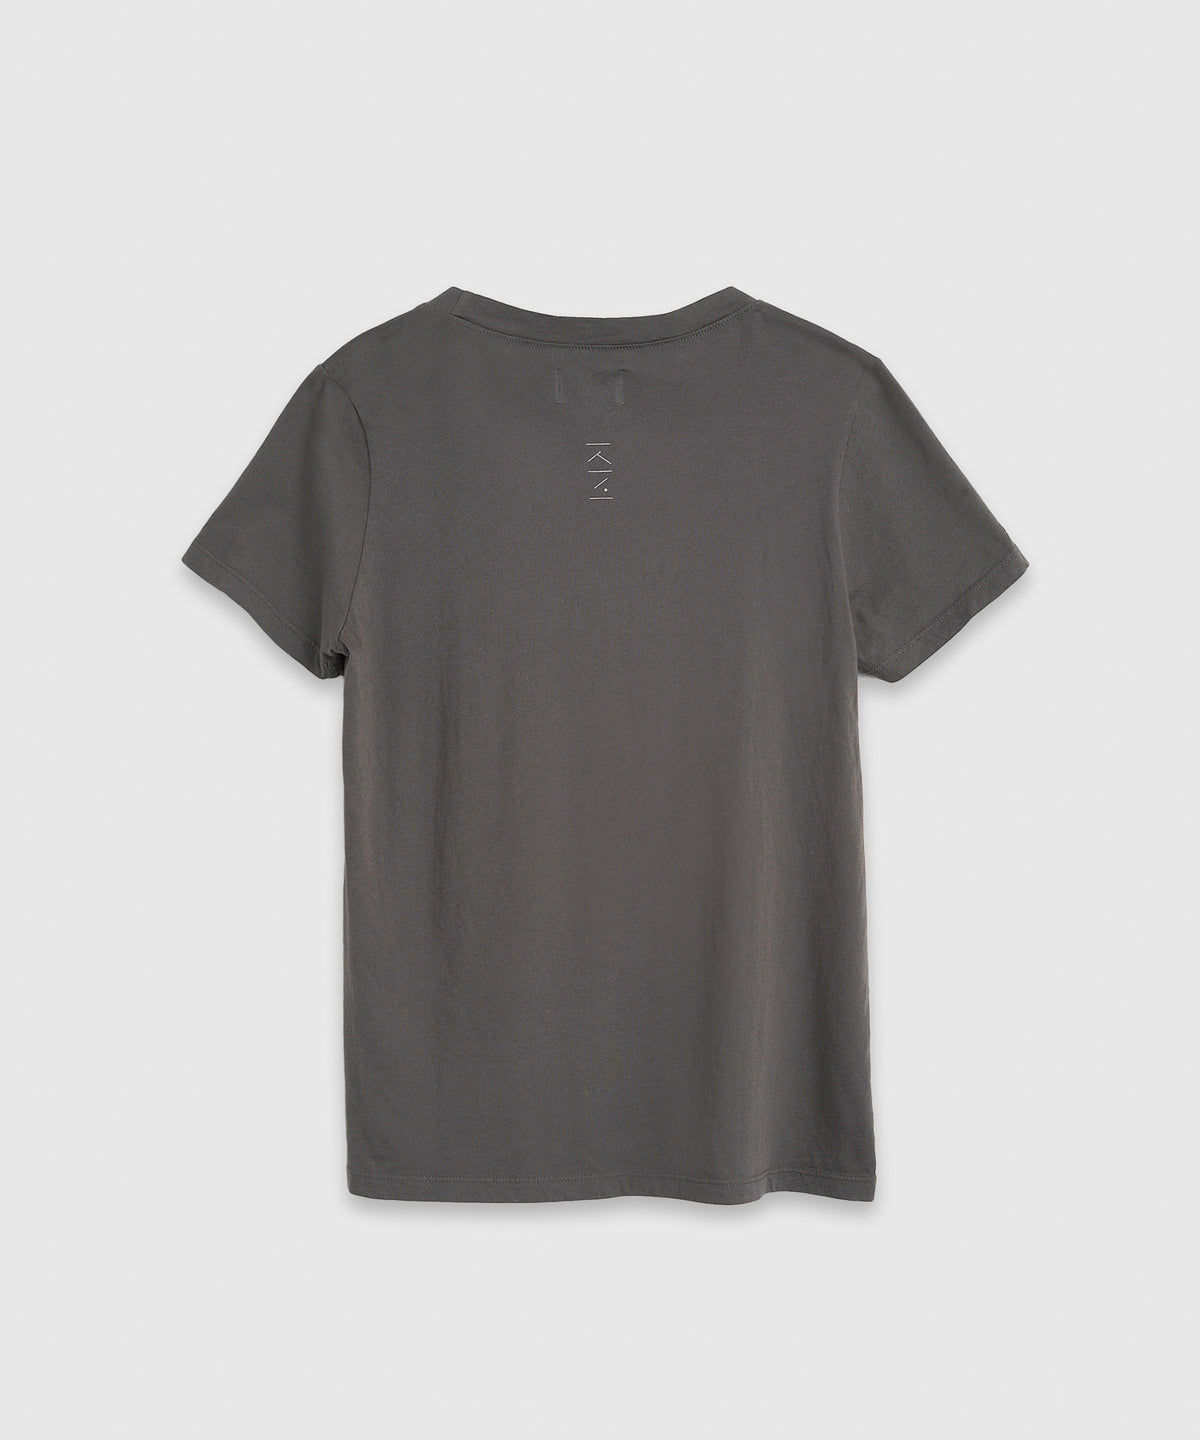 'Spark Joy' Organic Cotton T-Shirt